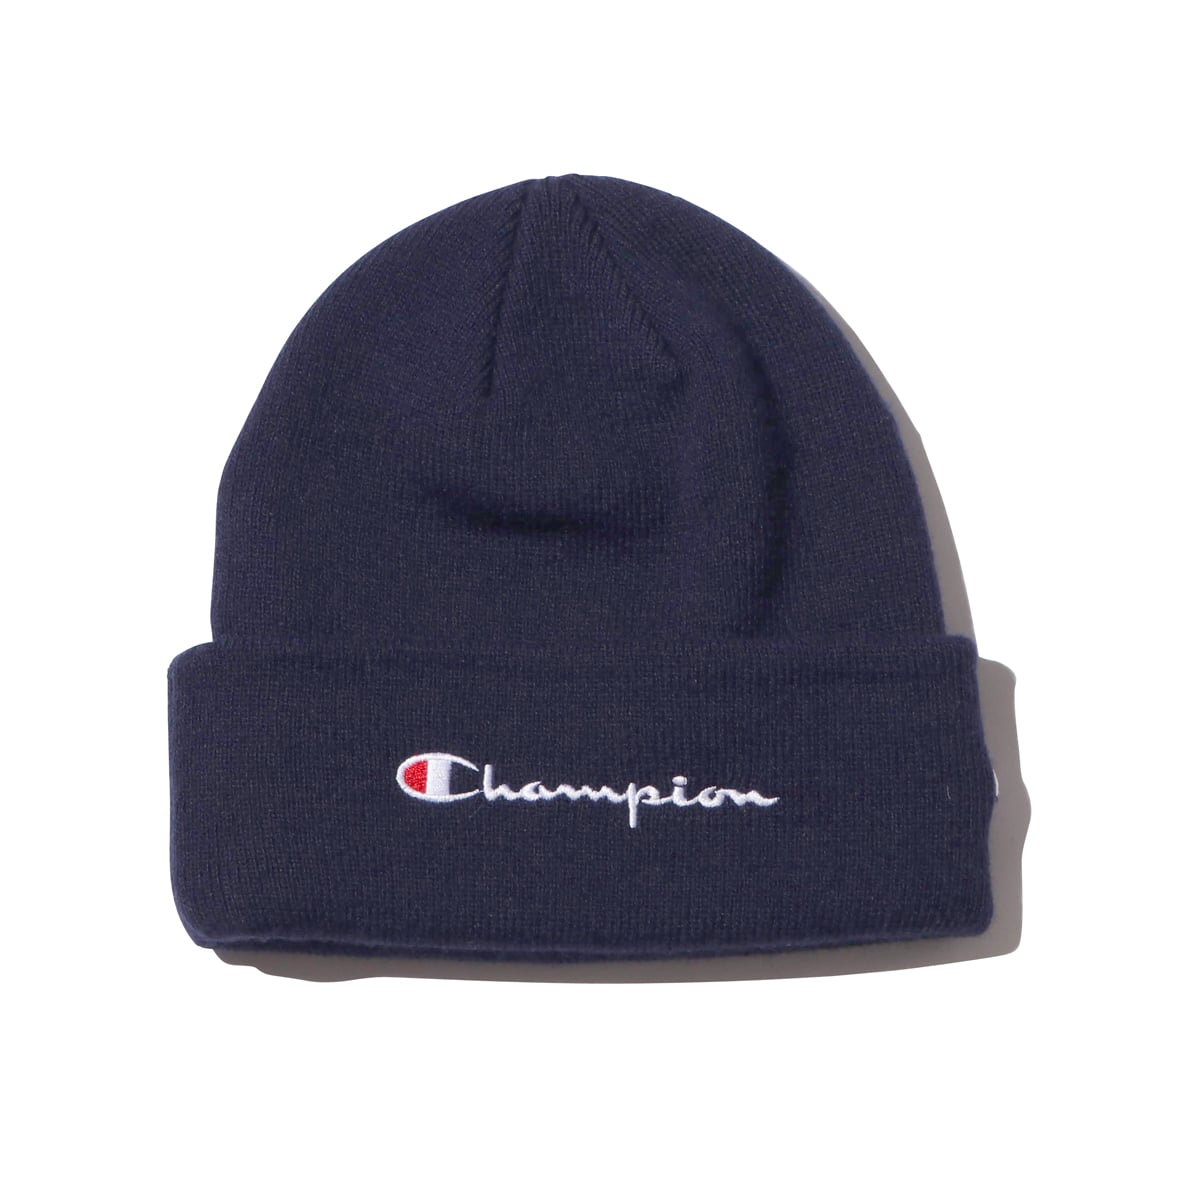 CHAMPION x ATMOS LAB KNIT CAP NAVY 18FW-I_photo_large